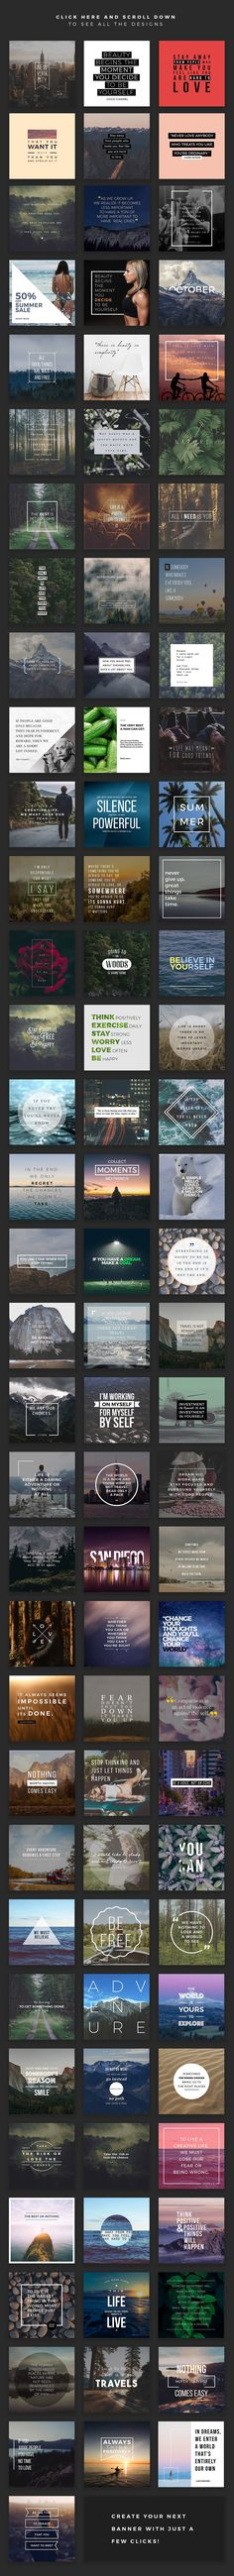 MegaPack Social Media Banner by MinimalStudioCo on @creativemarket